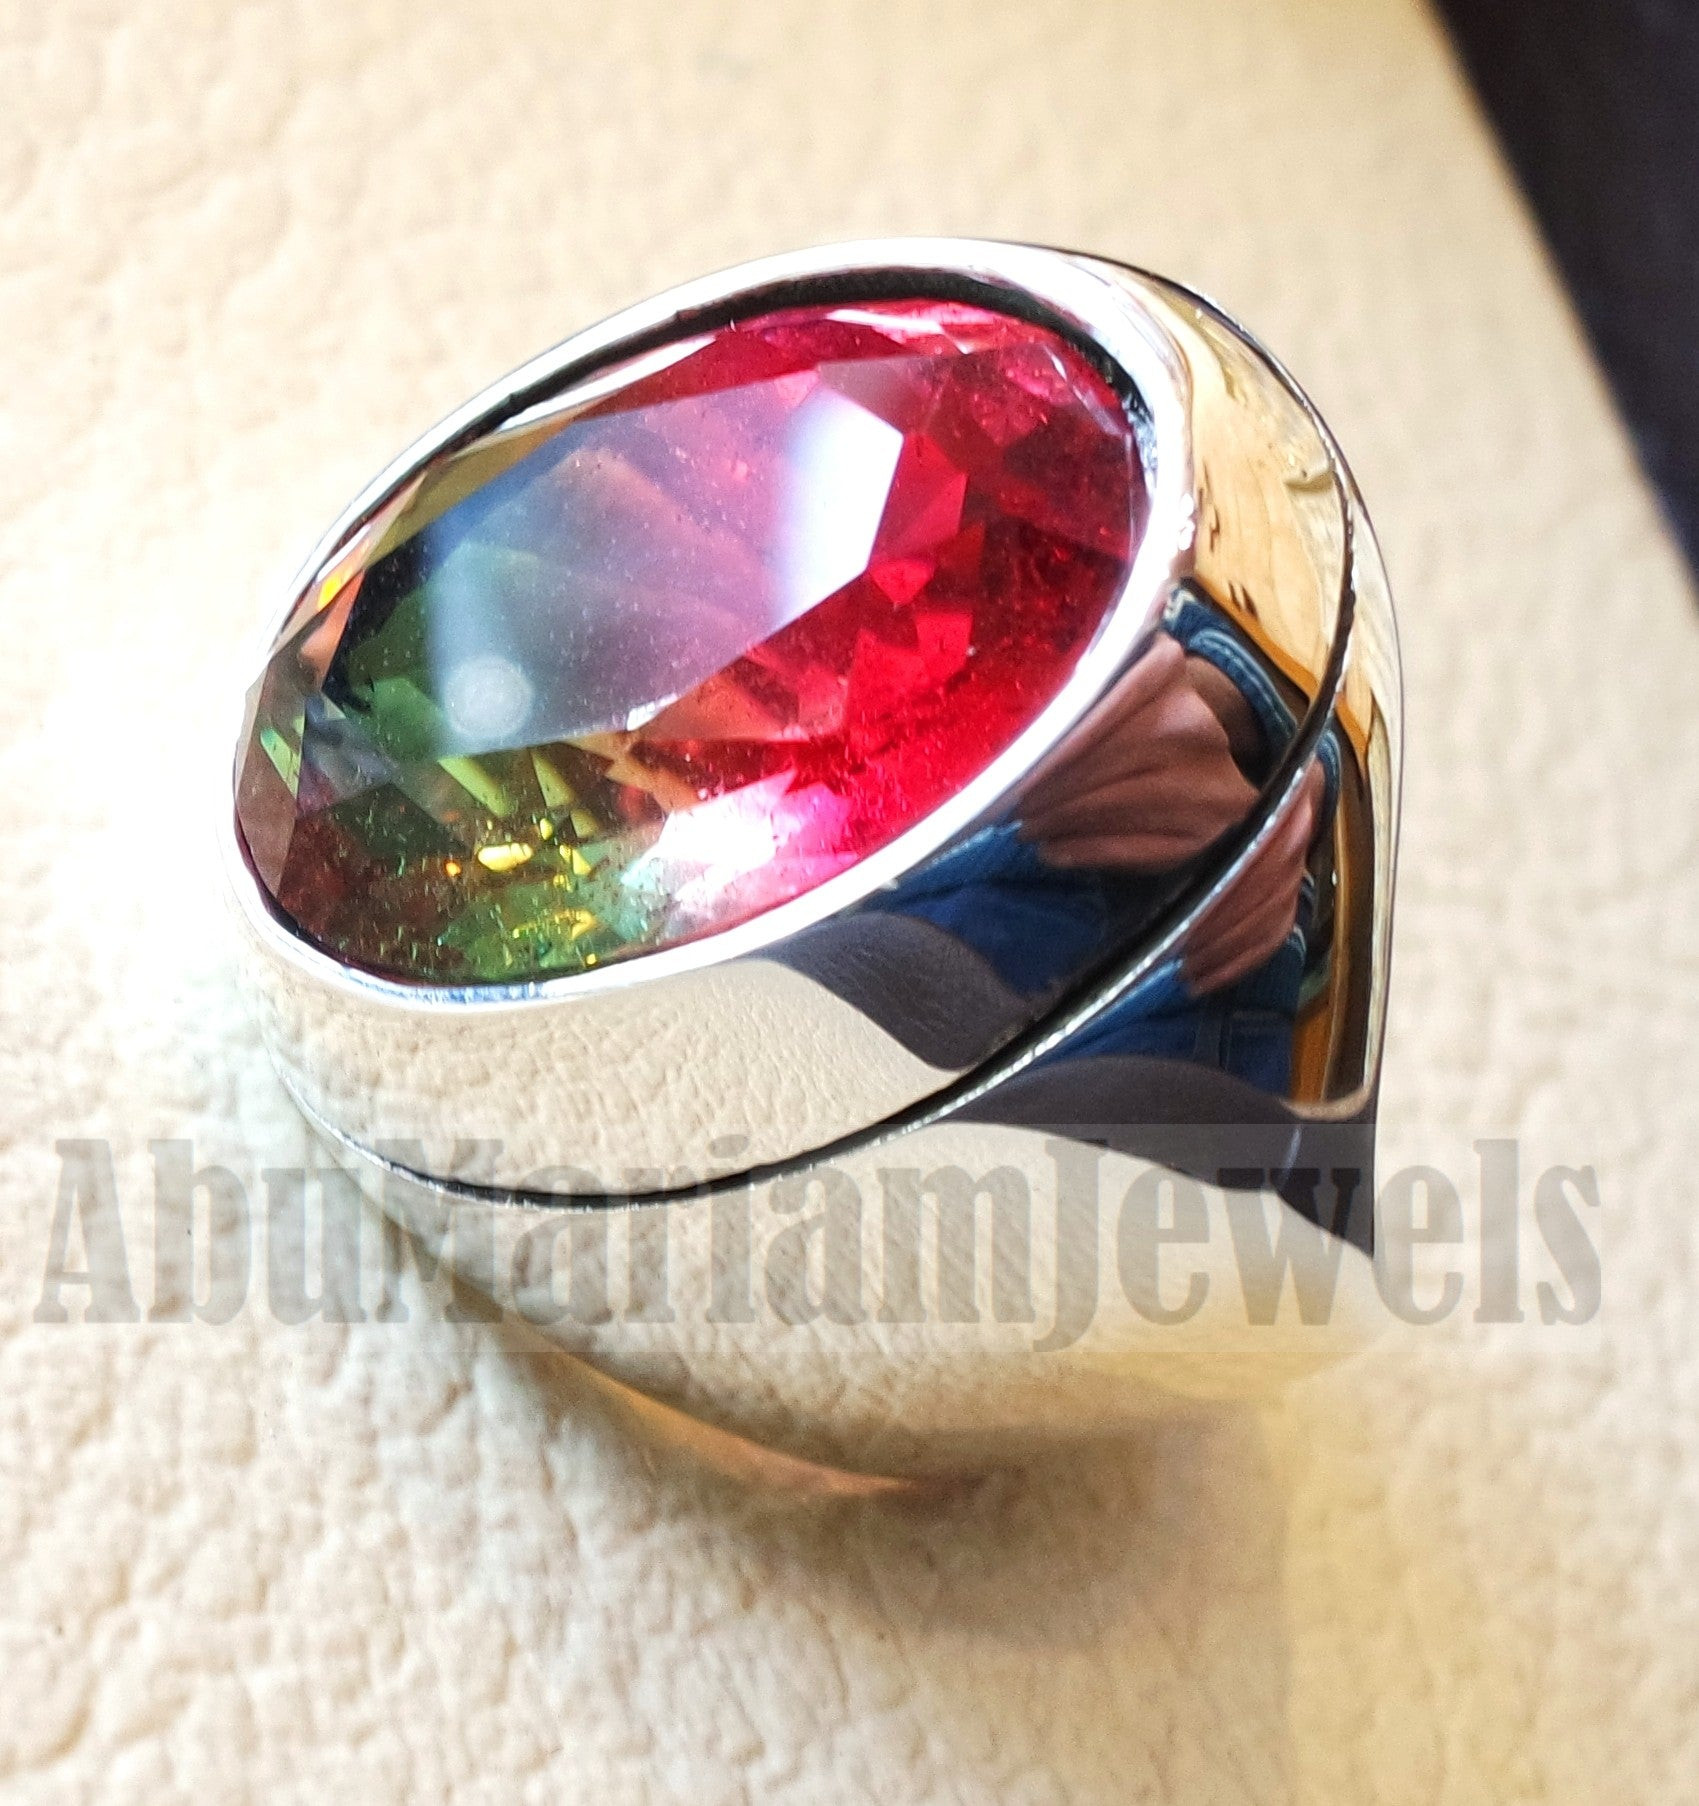 Stunning bi color lab created tourmaline colorful stone sterling silver heavy man ring any size green and pinkish red high quality gem